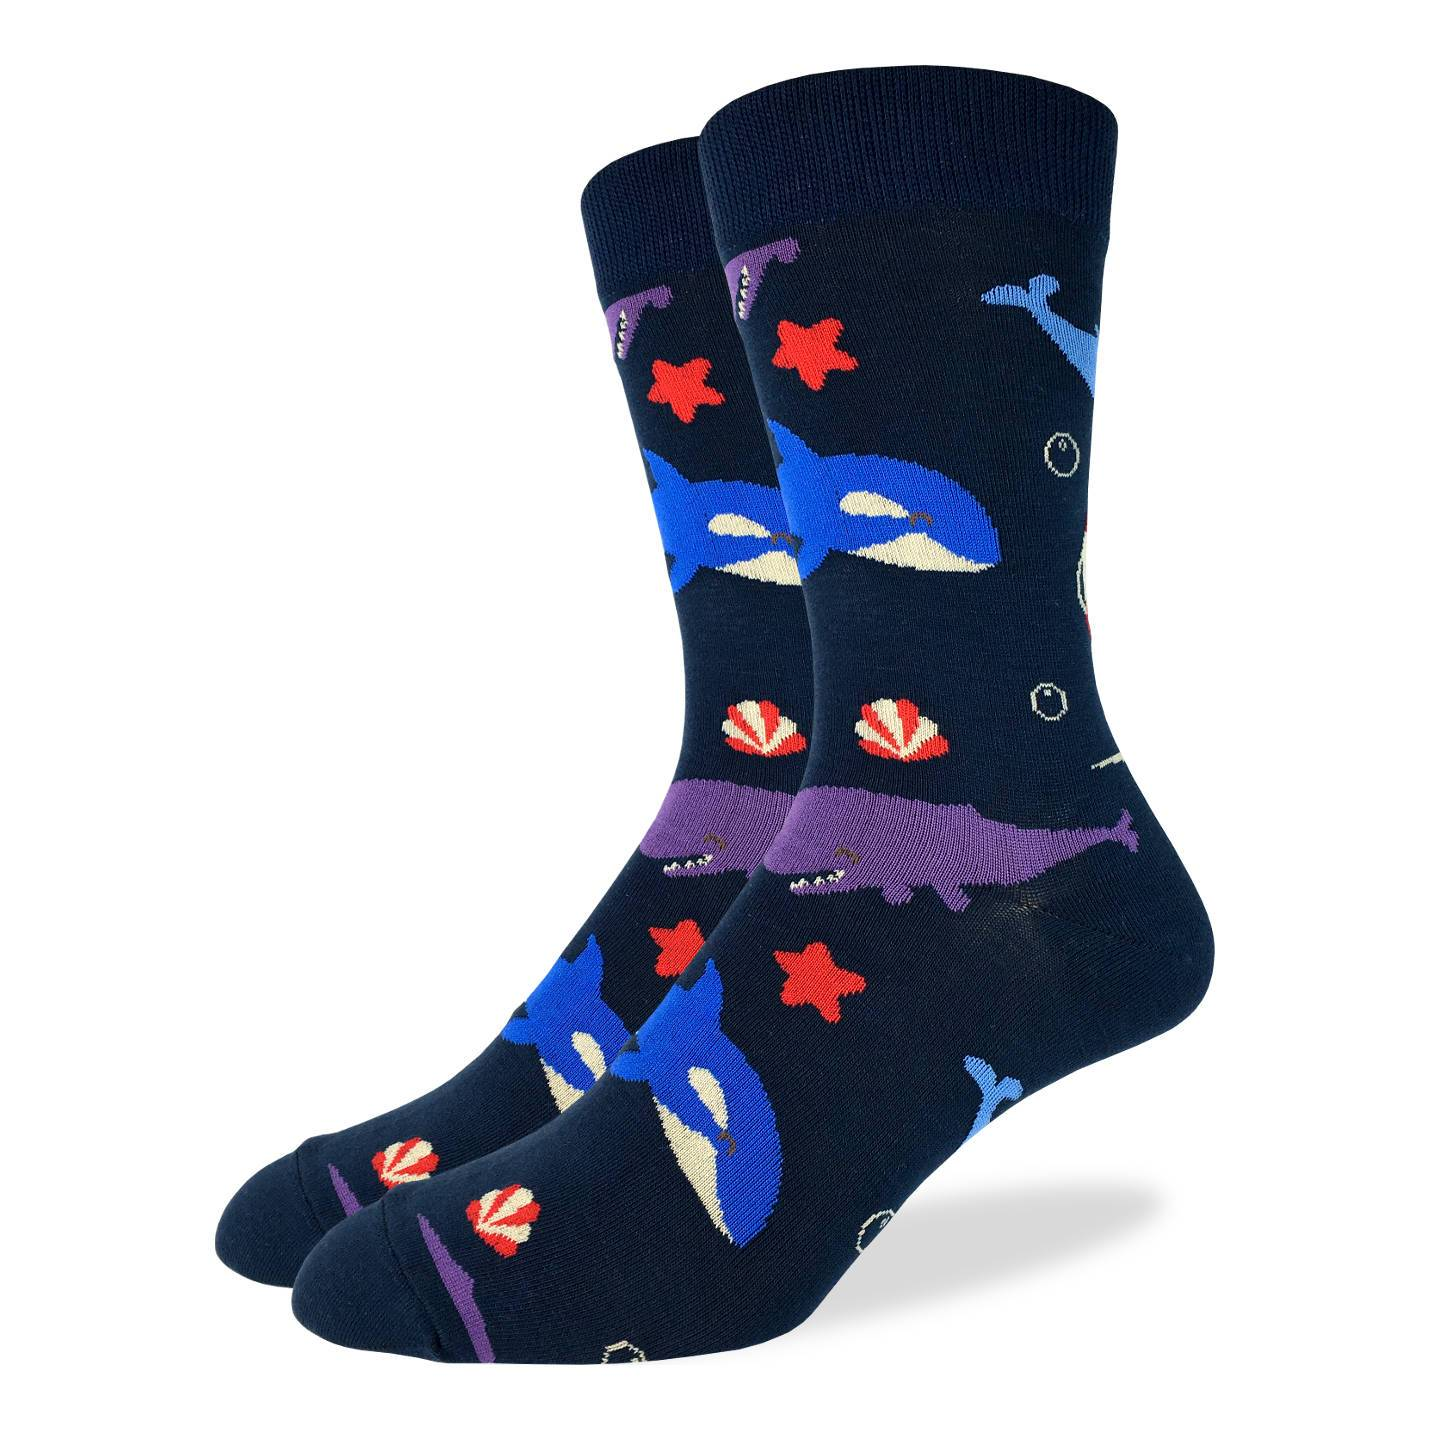 Men's Whales Socks - Good Luck Sock